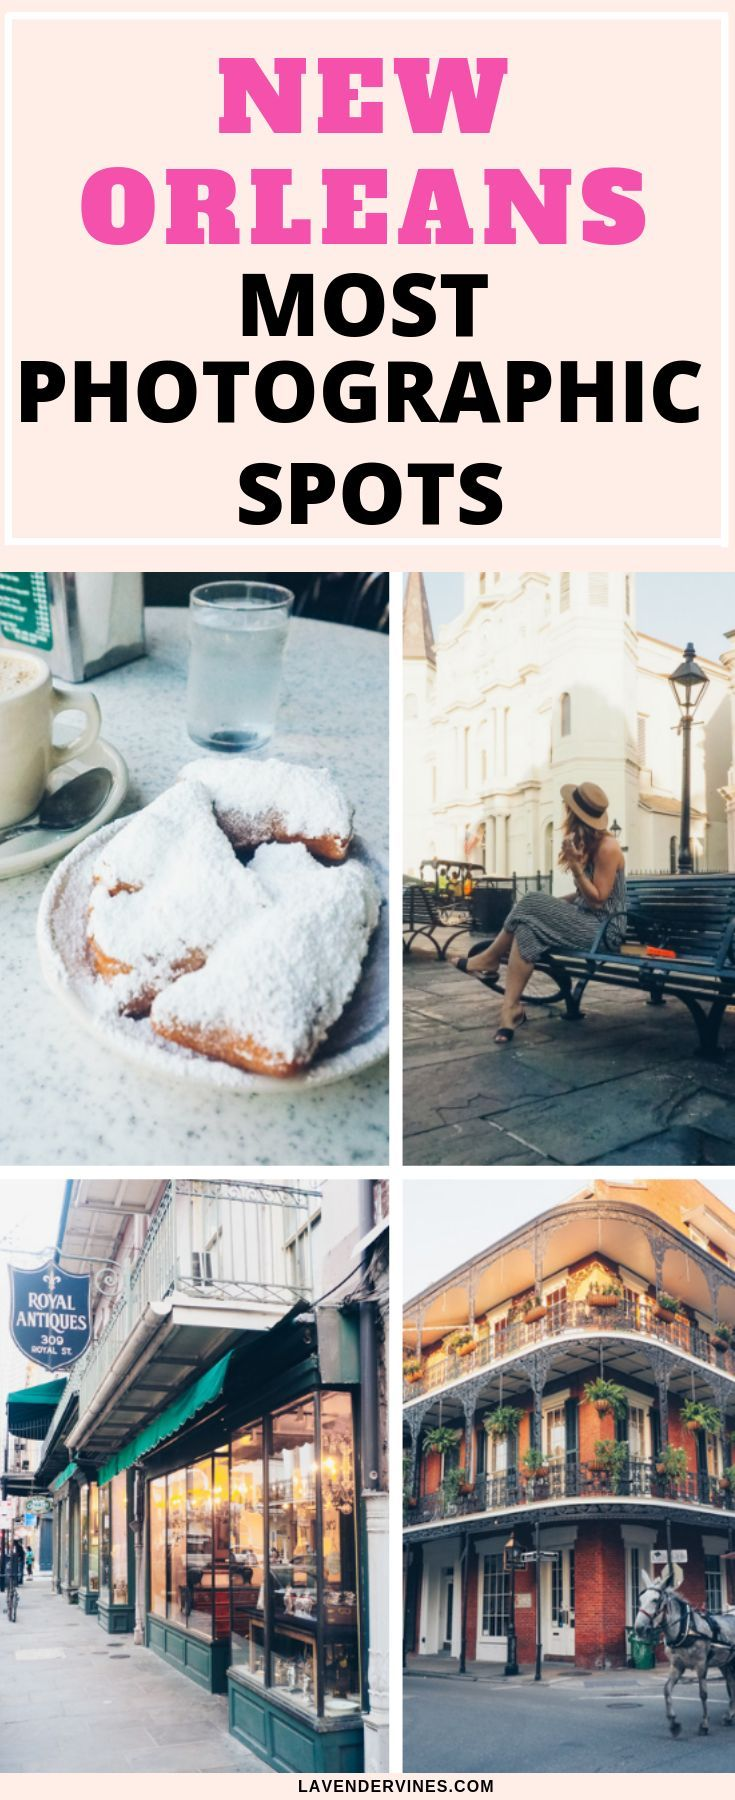 Looking for New Orleans photography ideas? New Orleans is the perfect place for a photoshoot, there's so much beauty in the French Quarter when it comes to photography! #neworleans #frenchquarter #photography #usa #travel #travelplanning #travelinspiration